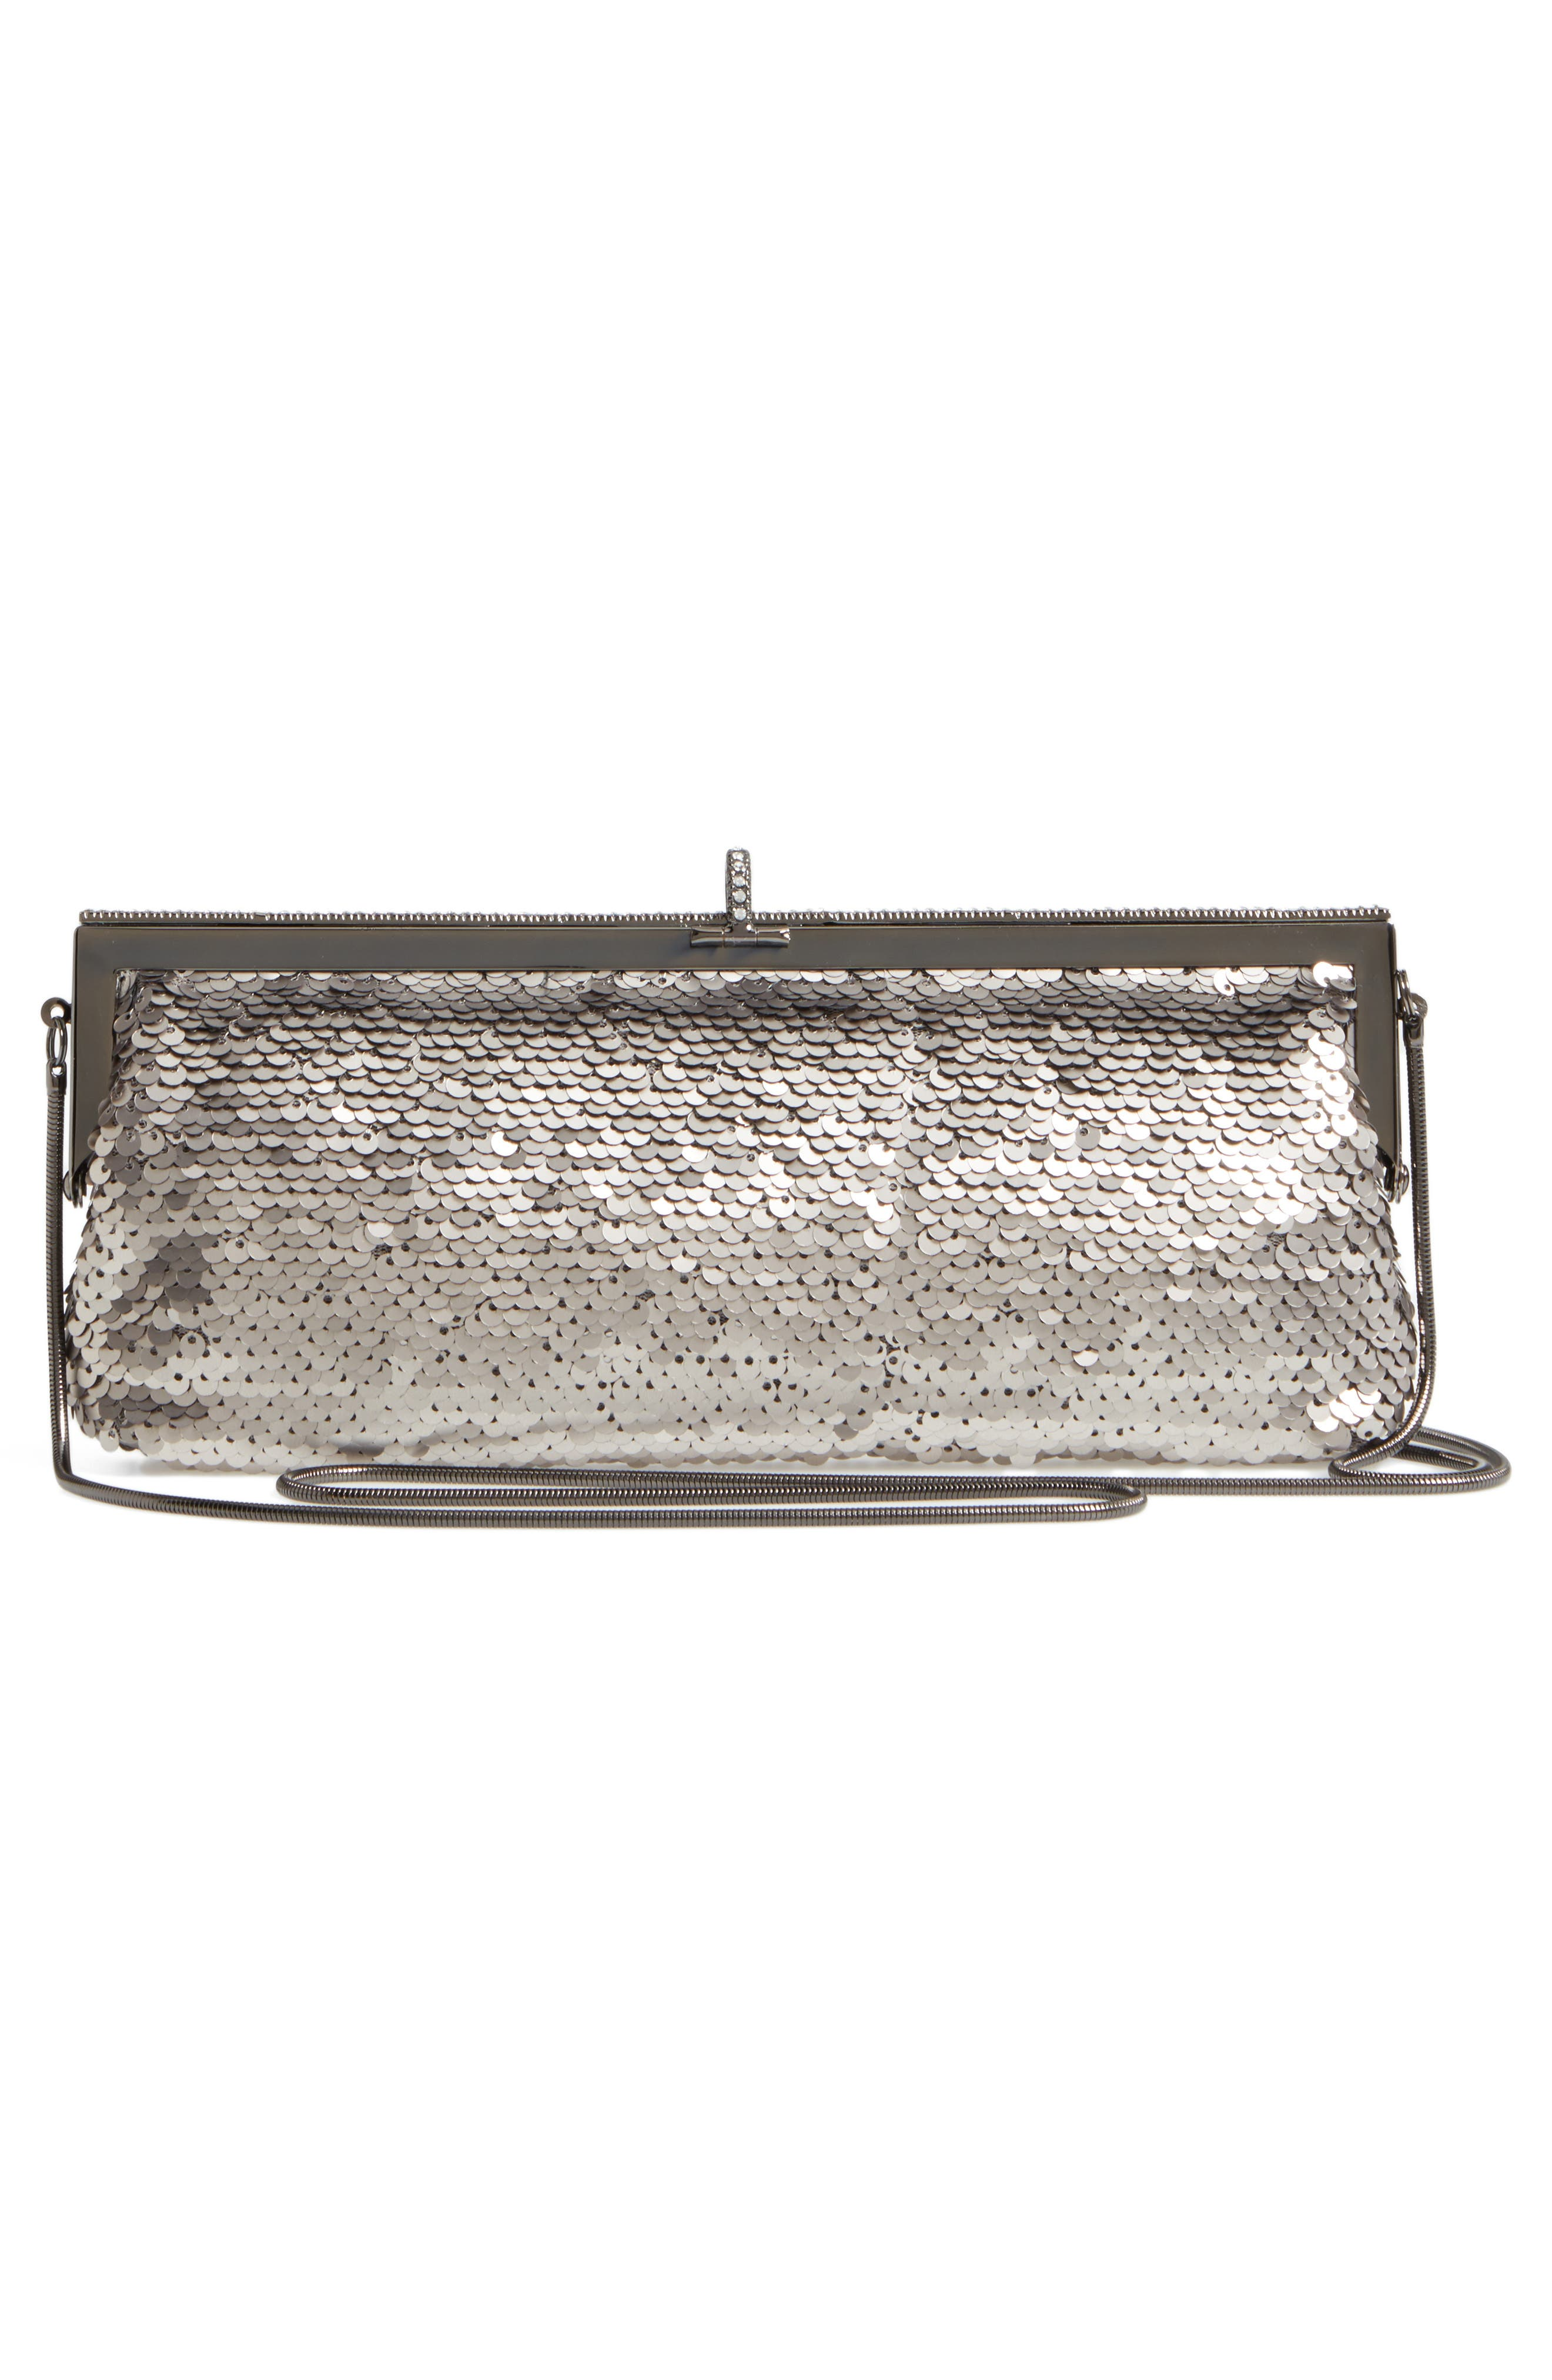 Badgley Mischka Dazzle Sequin Frame Clutch,                             Alternate thumbnail 3, color,                             040